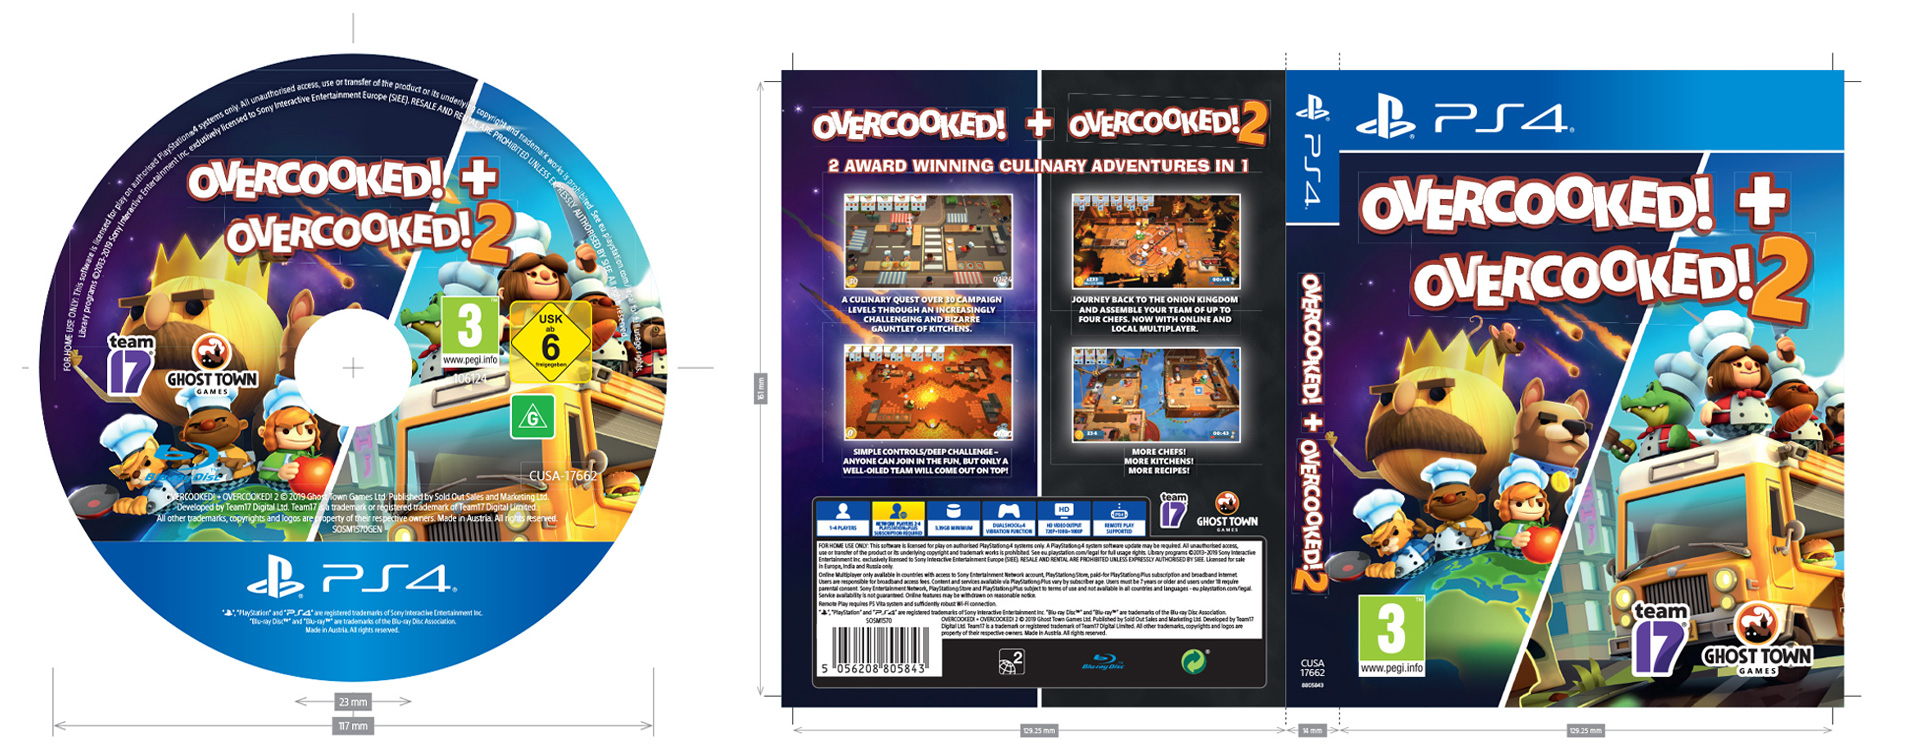 overcooked_reprographics_artwork_videogame